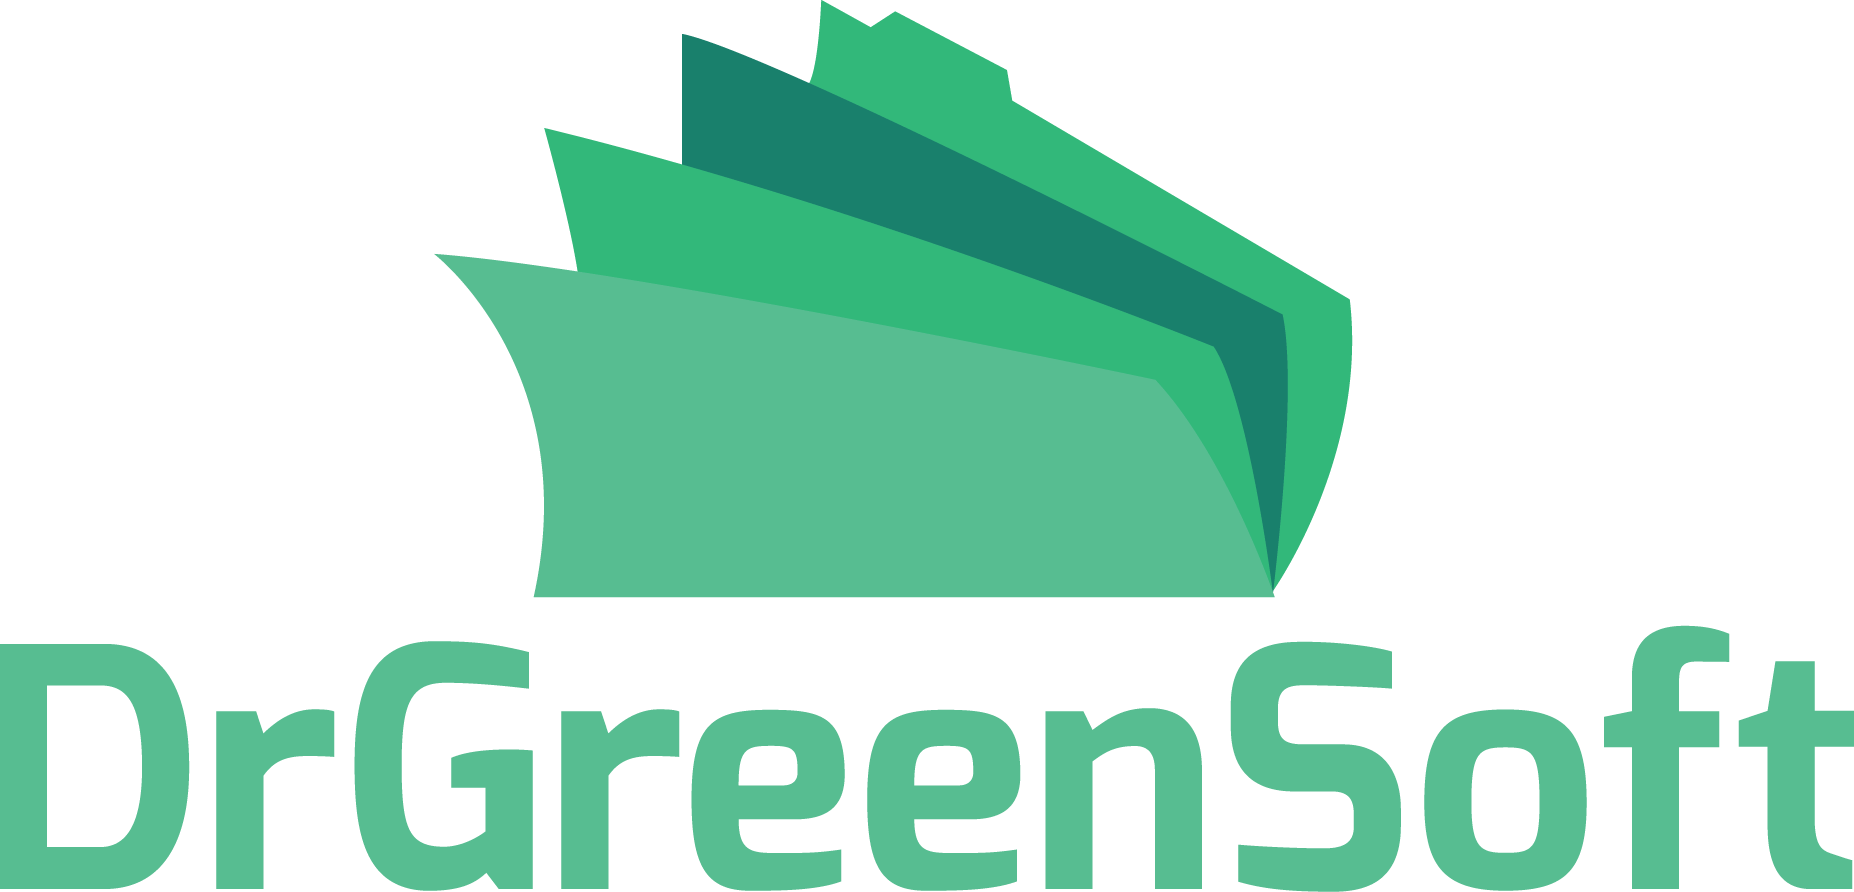 DrGreensoft Releases Special Software with Medical Doctors in Mind